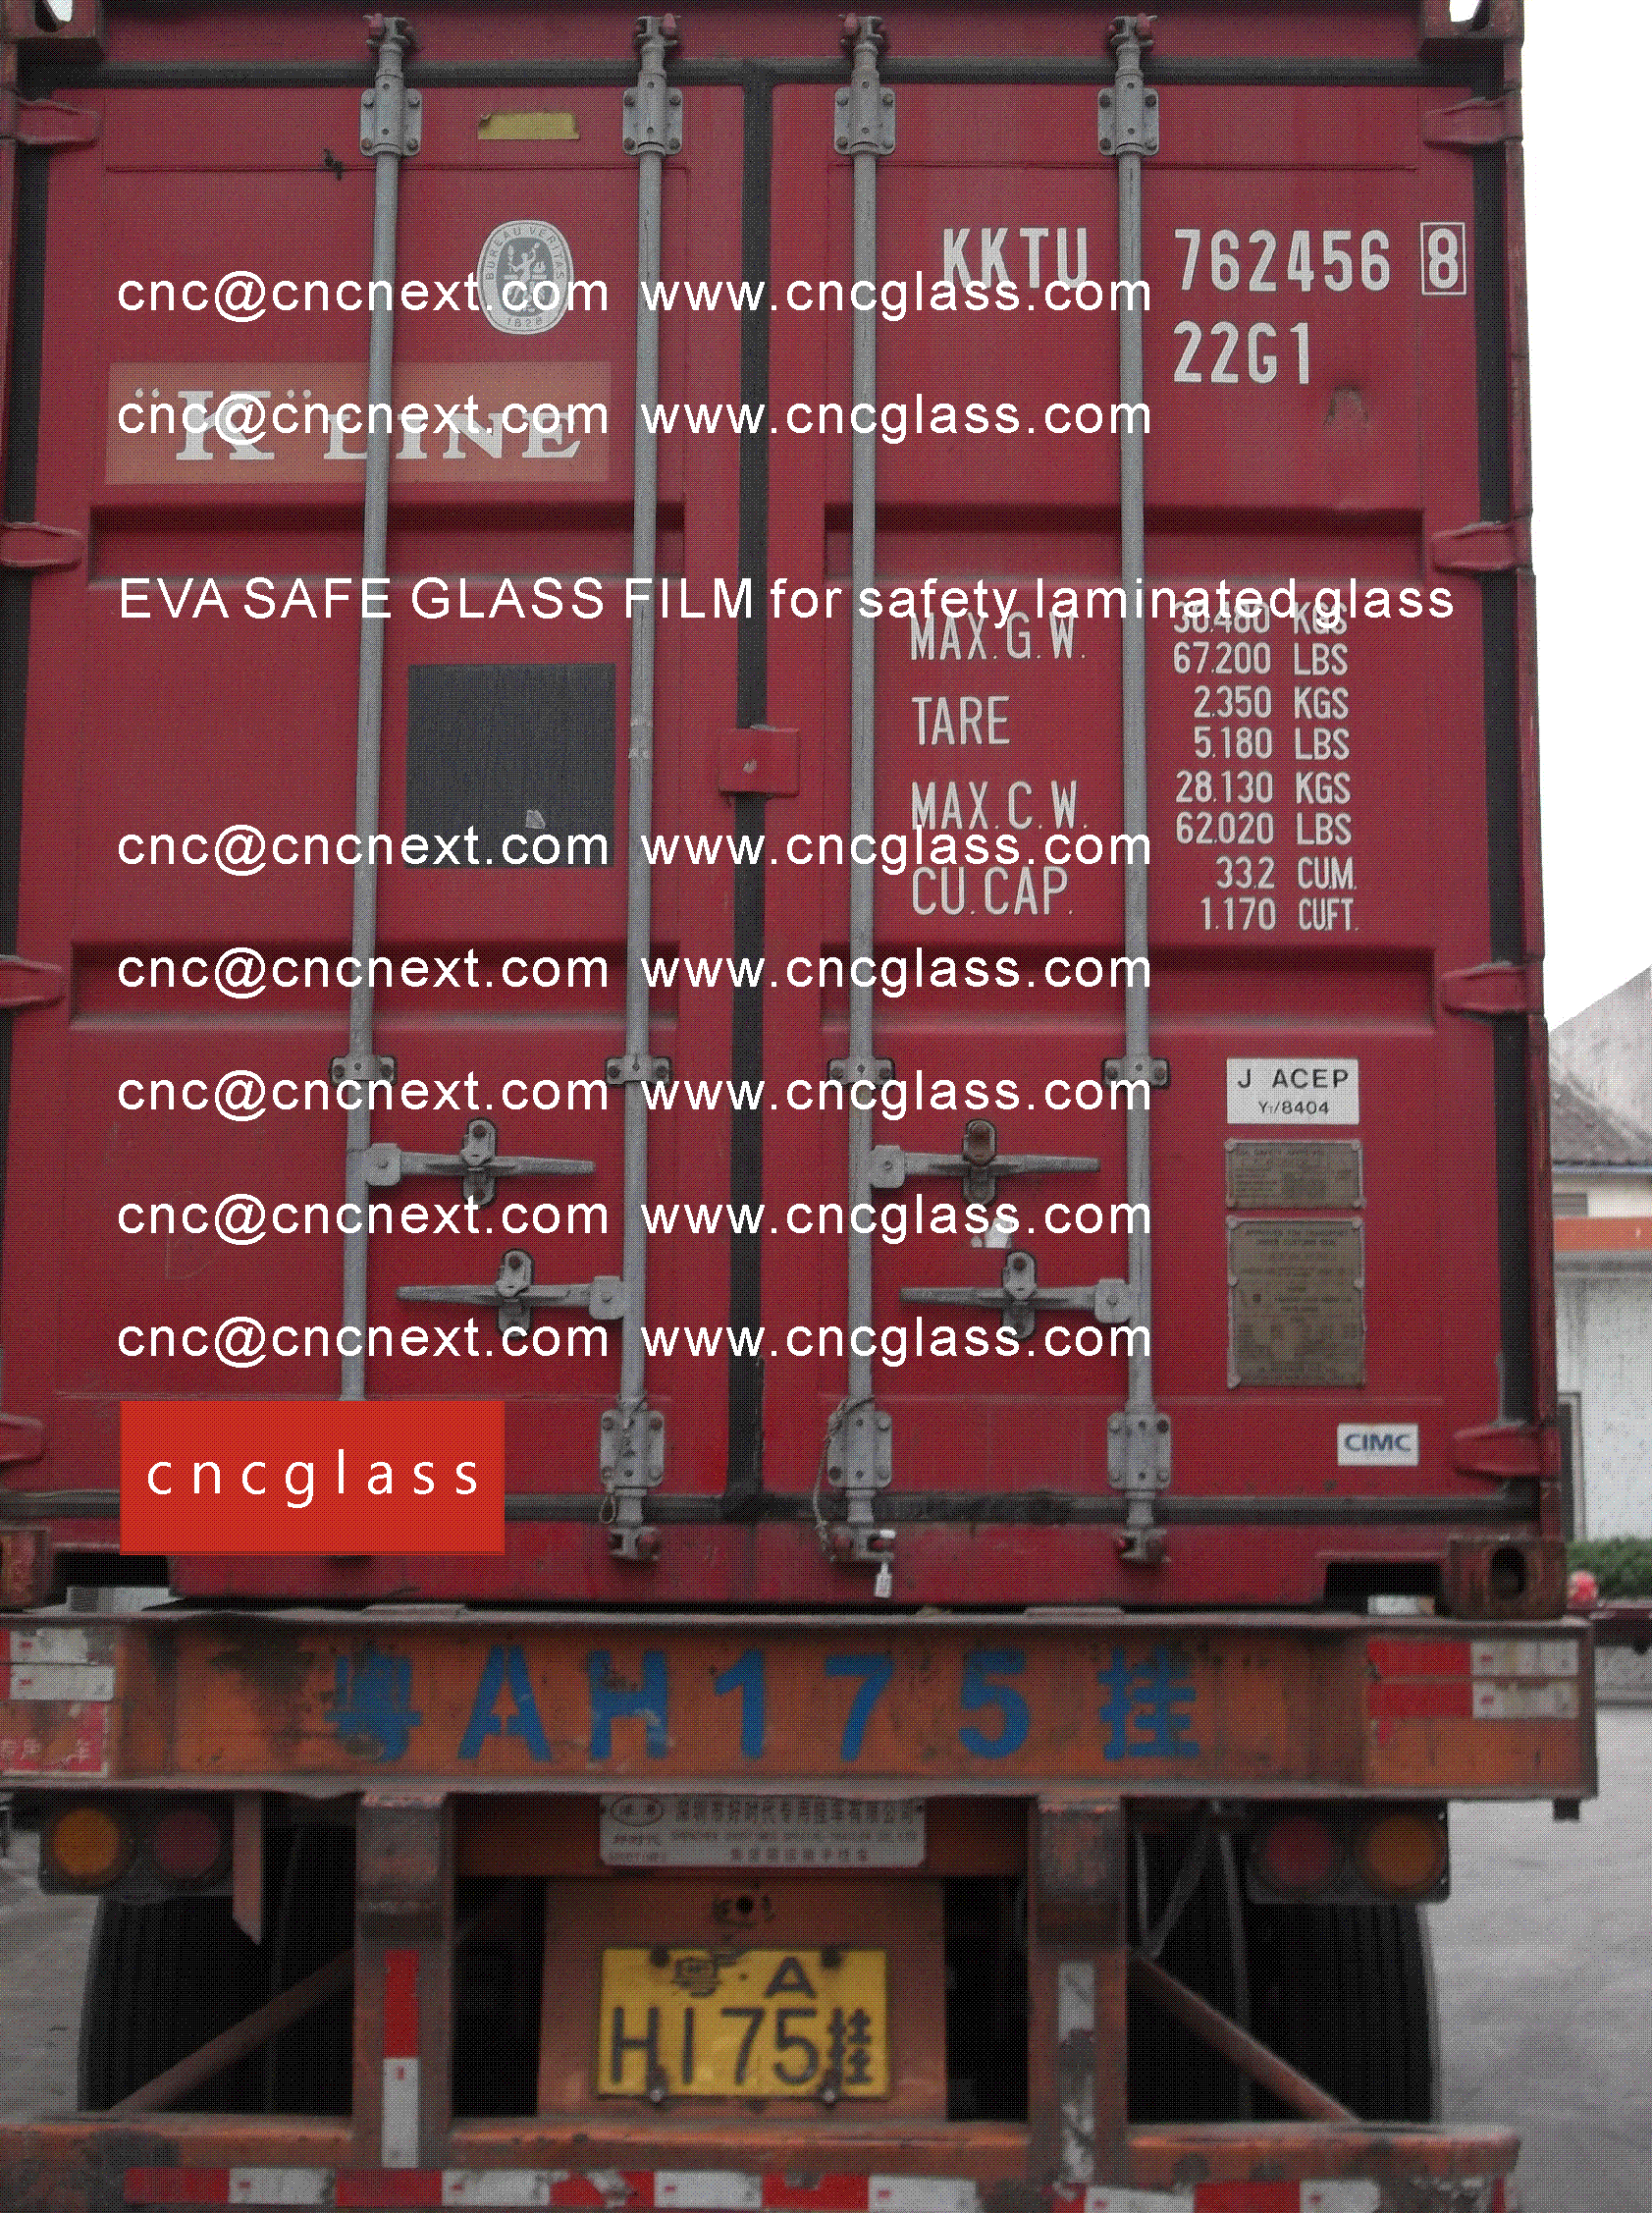 007 EVA SAFE GLASS FILM LOADING CONTAINER (SAFETY LAMINATED GLASS)